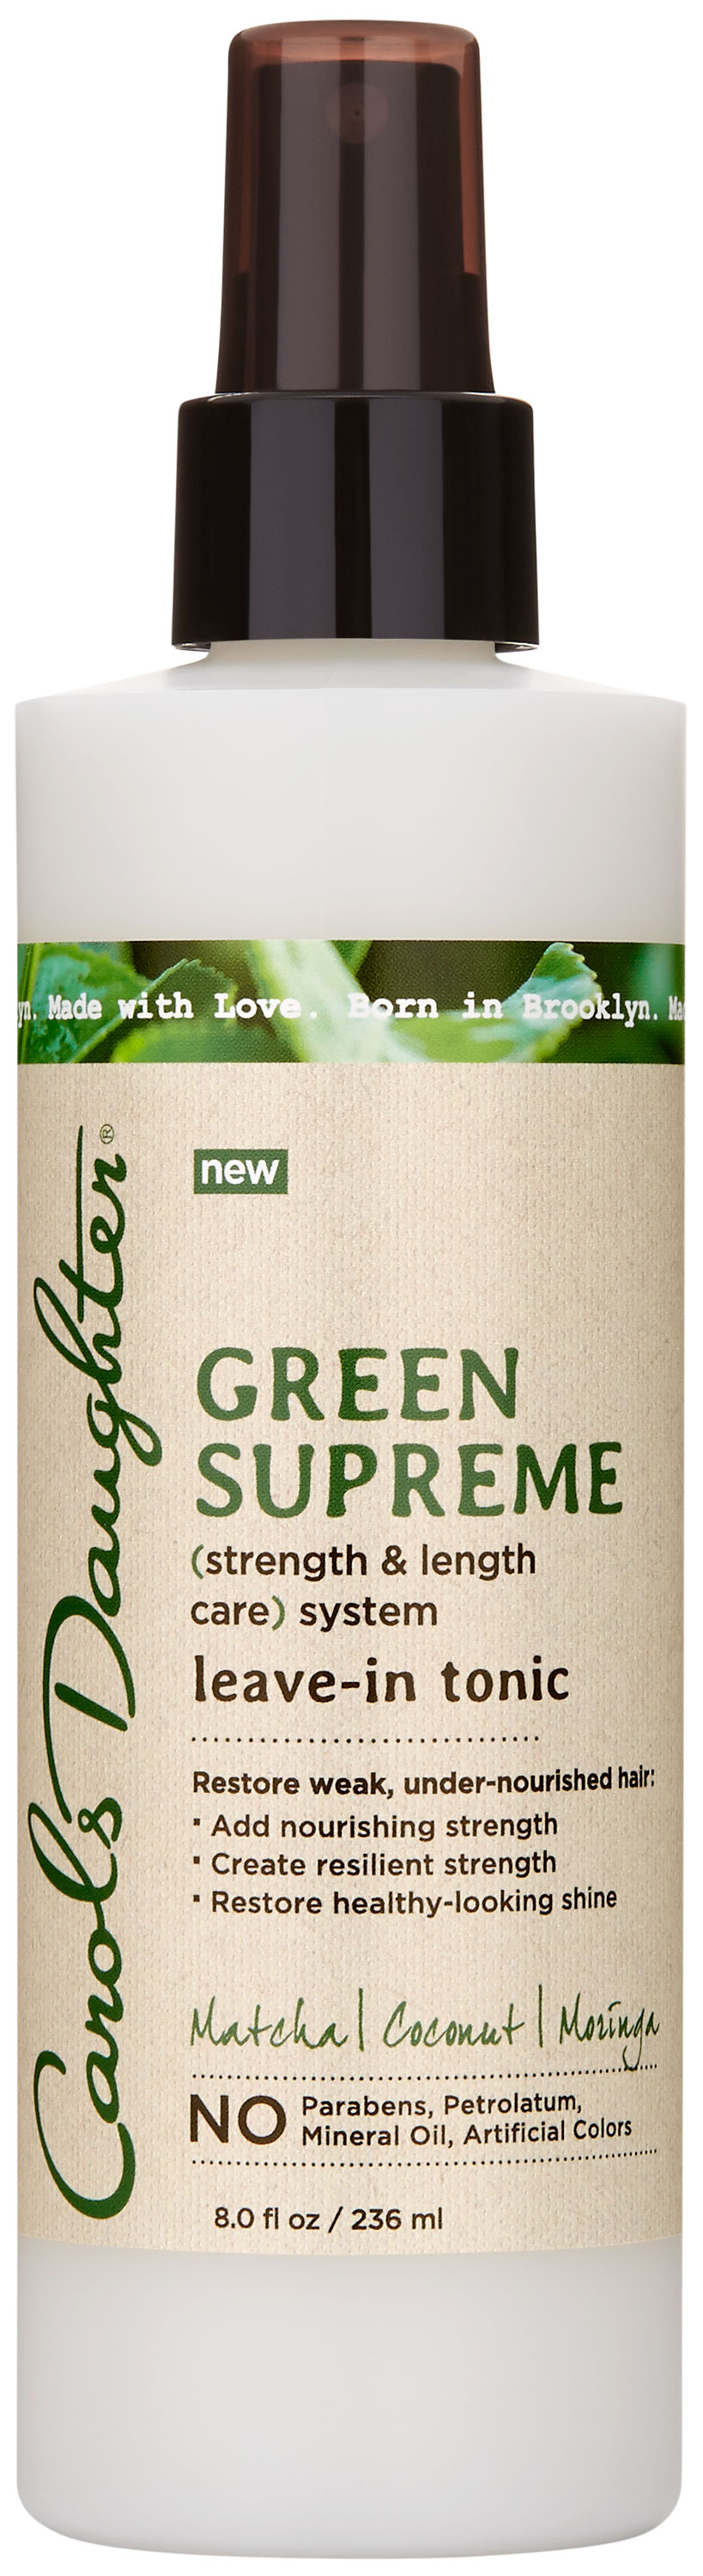 Carol's Daughter Green Supreme Leave-In Tonic